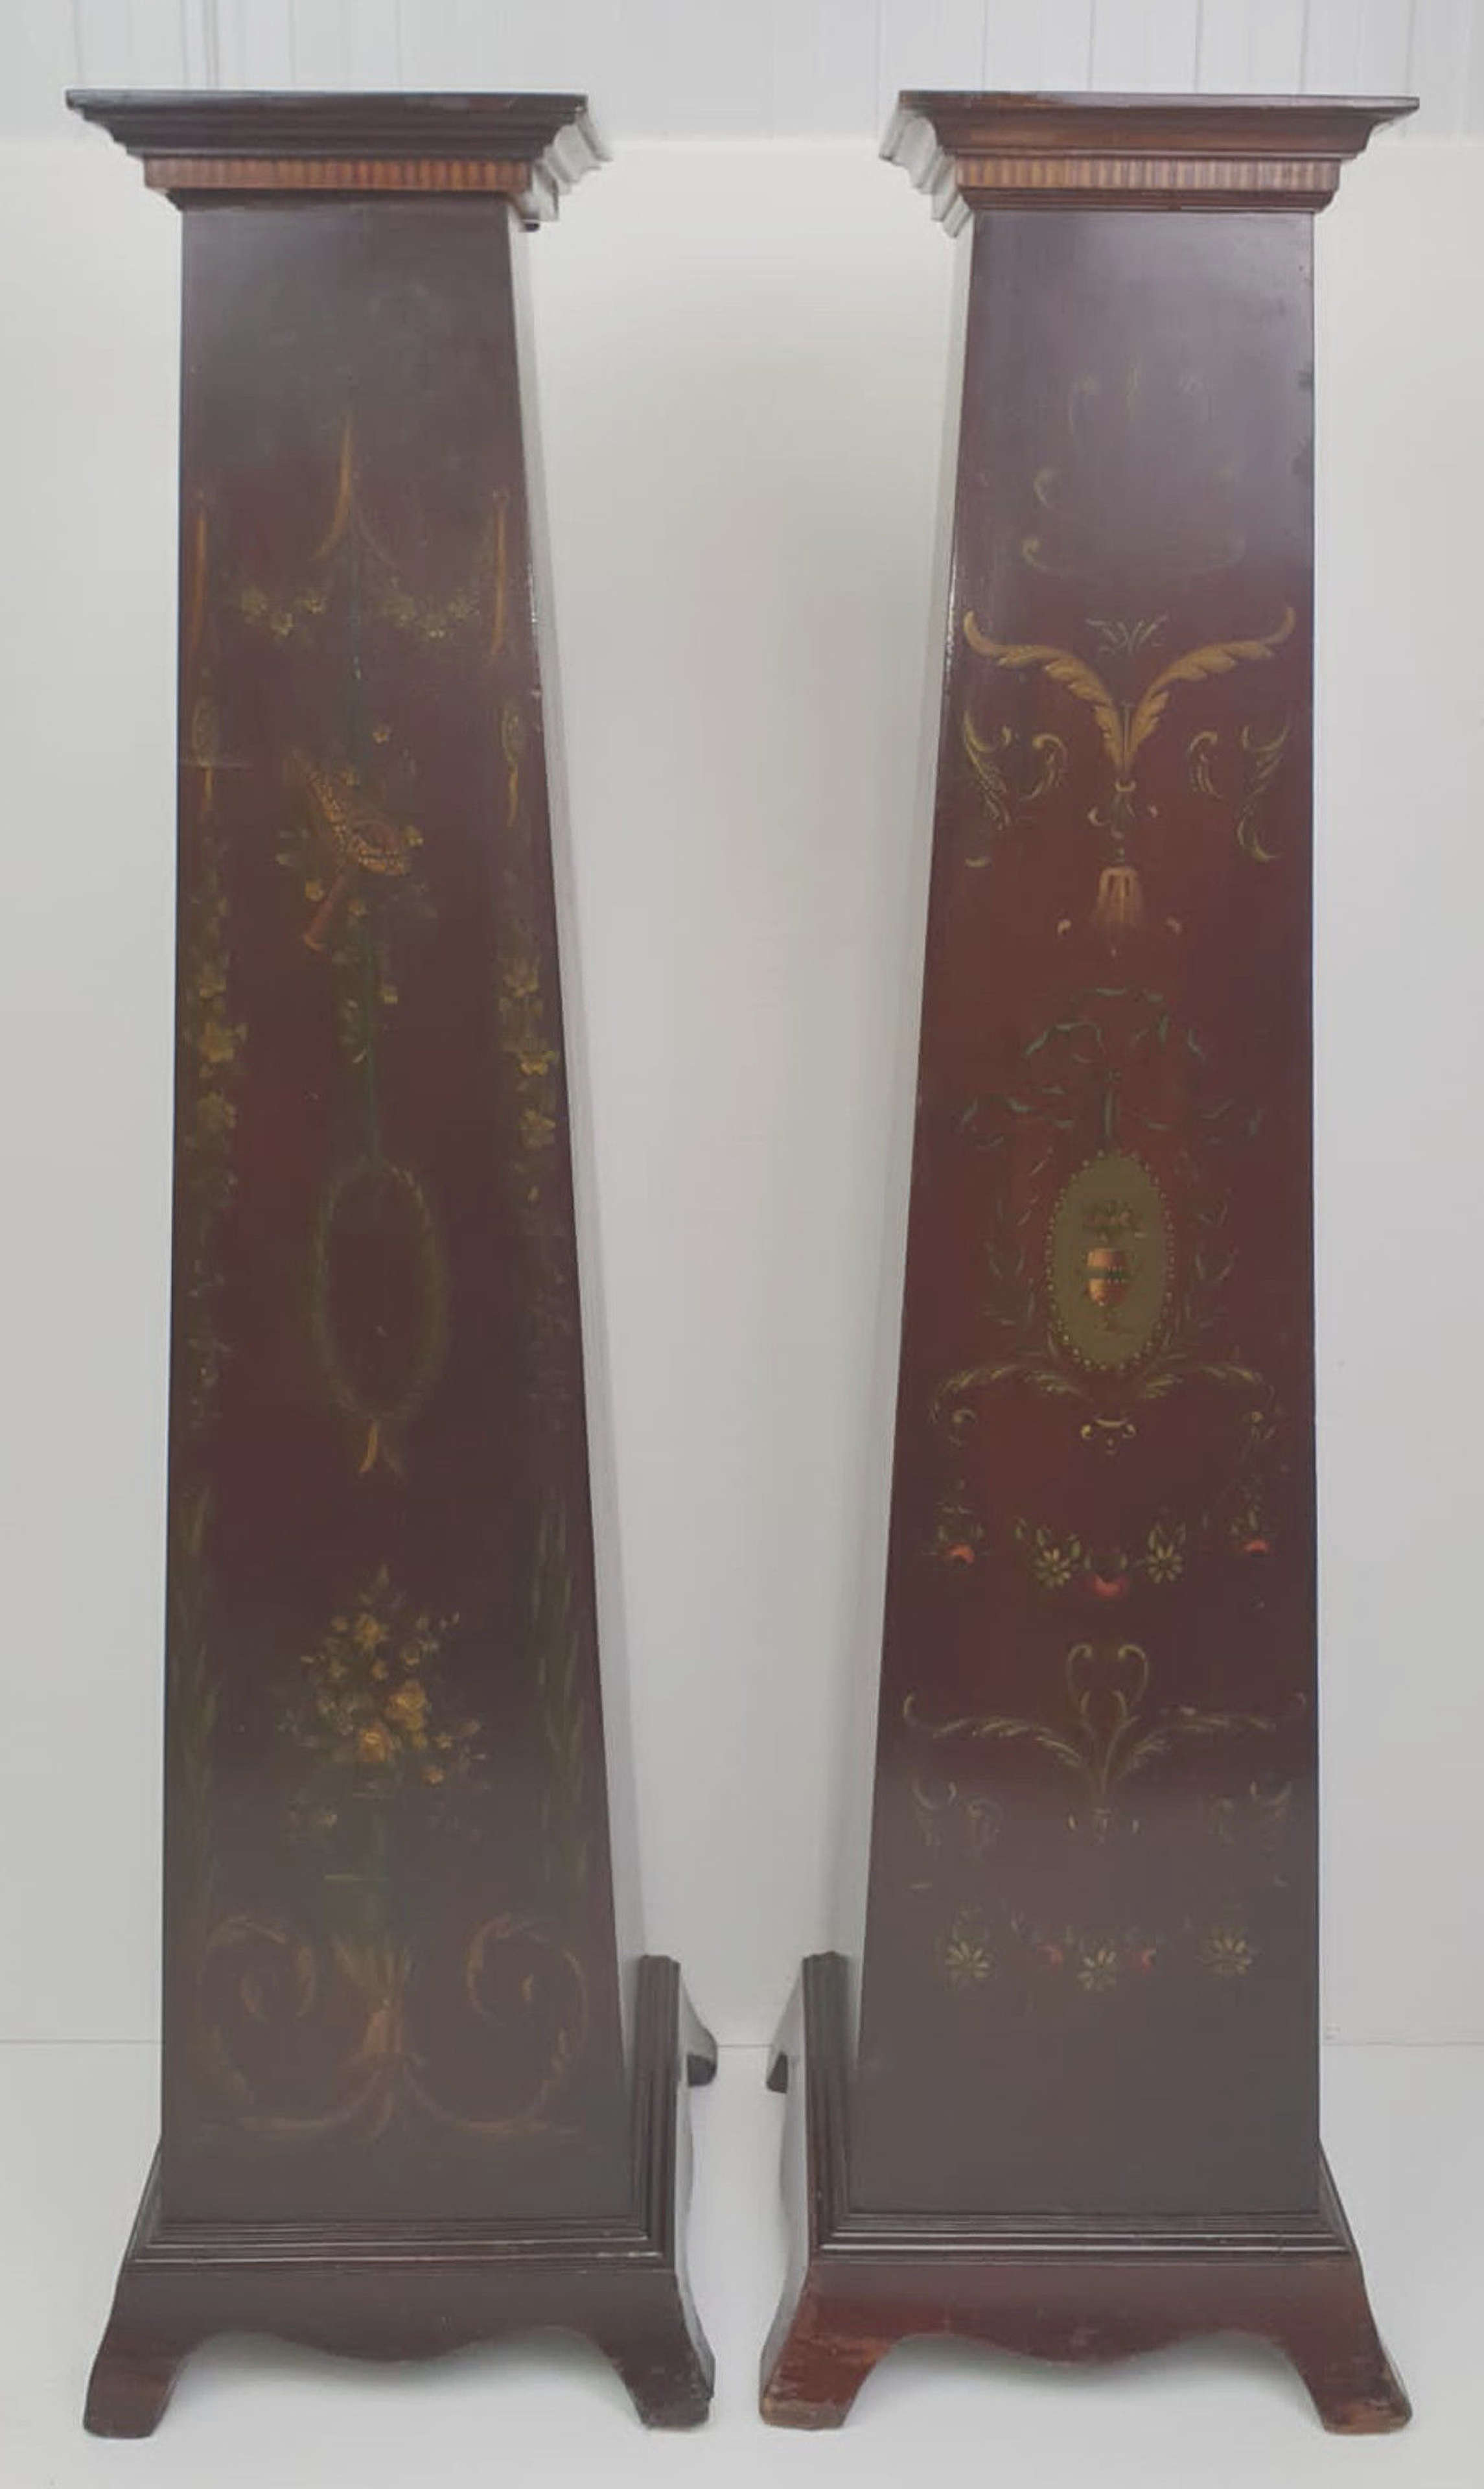 Edwardian Inlaid Painted Mahogany Pair of Jardiniere or Bust Stands